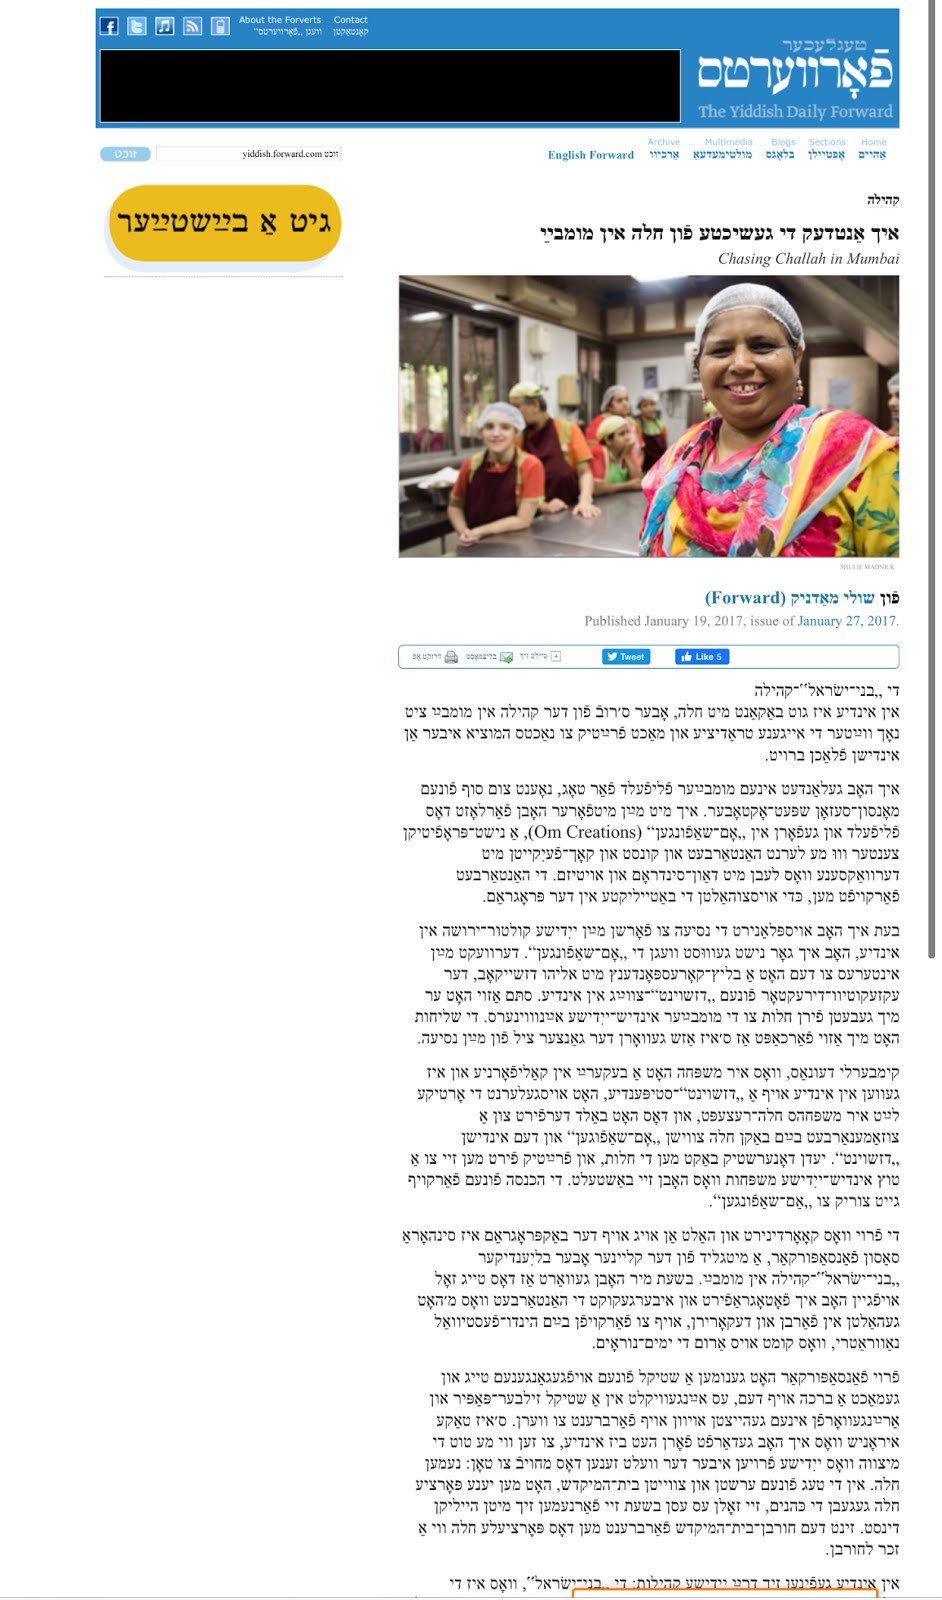 'Chasing Challah in Mumbai' Translated to Yiddish